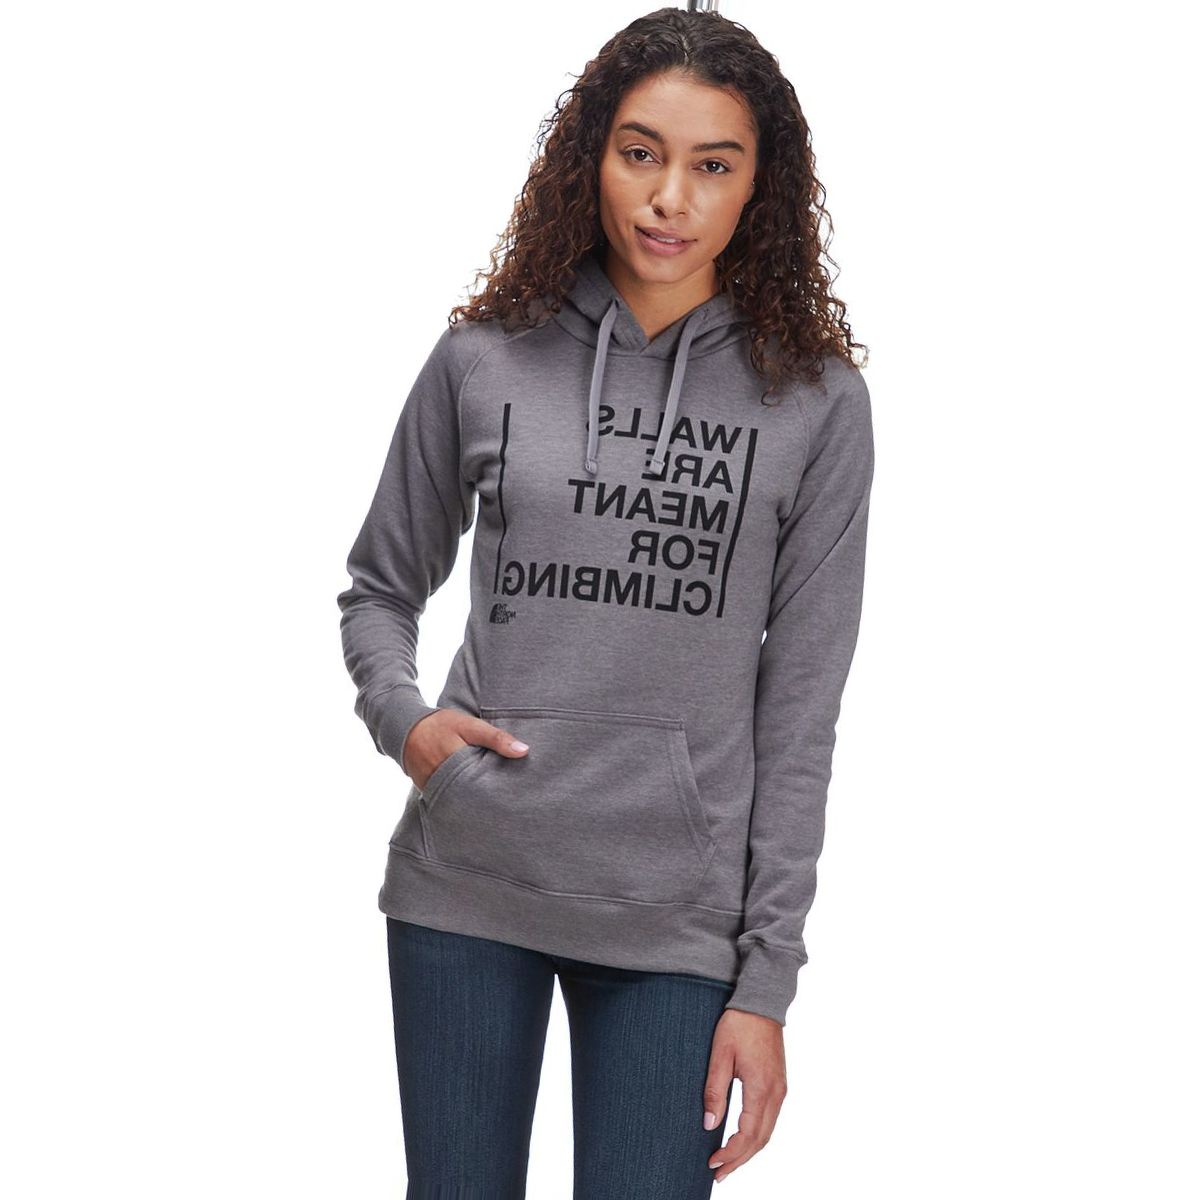 The North Face Meant To Be Climbed Pullover Hoodie - Women's